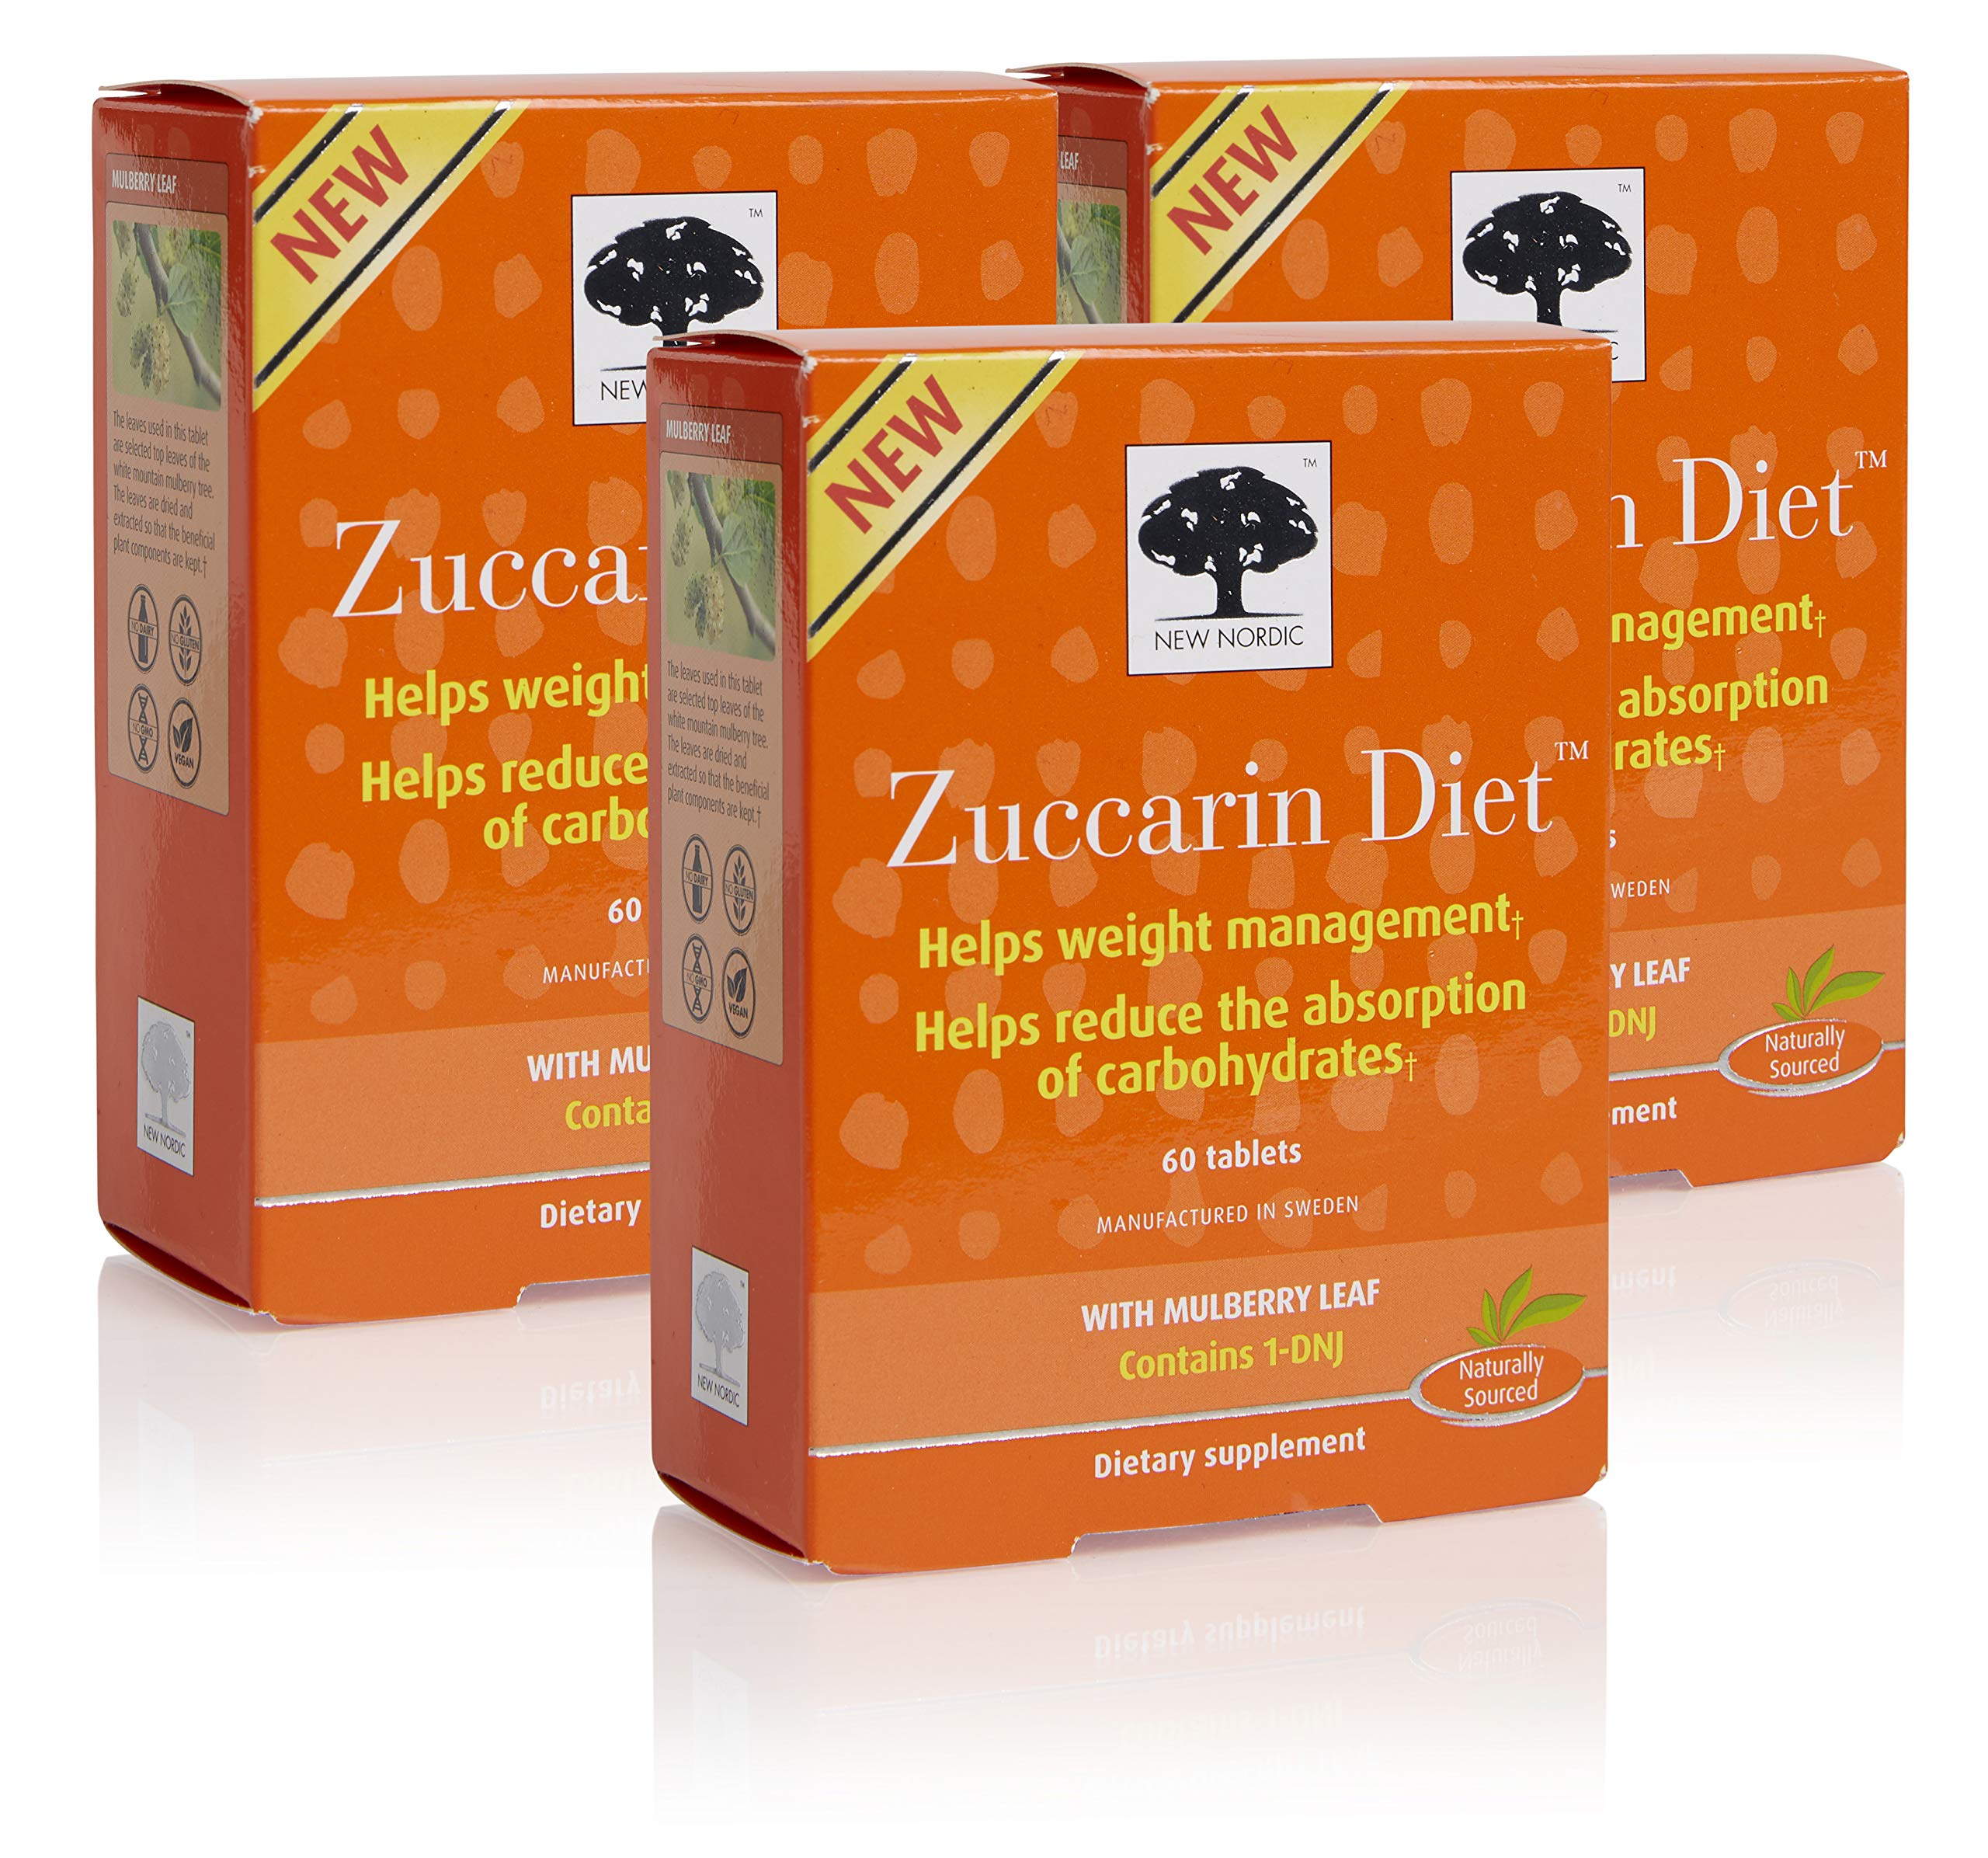 New Nordic Zuccarin Diet w/Mulberry Leaf, 60 Tablets (Pack of 3)